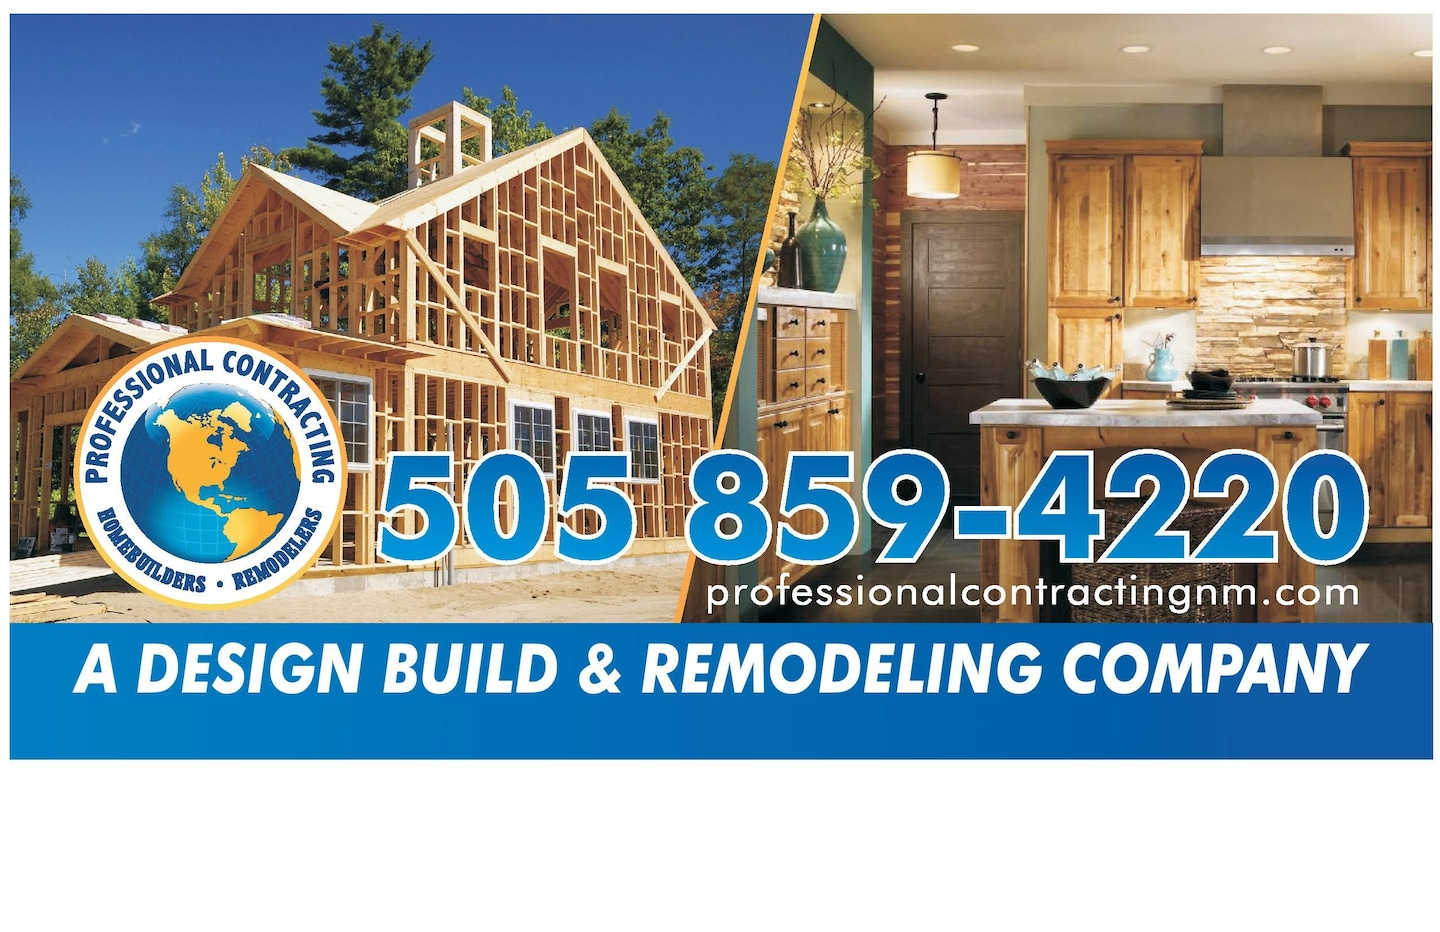 Professional Contracting